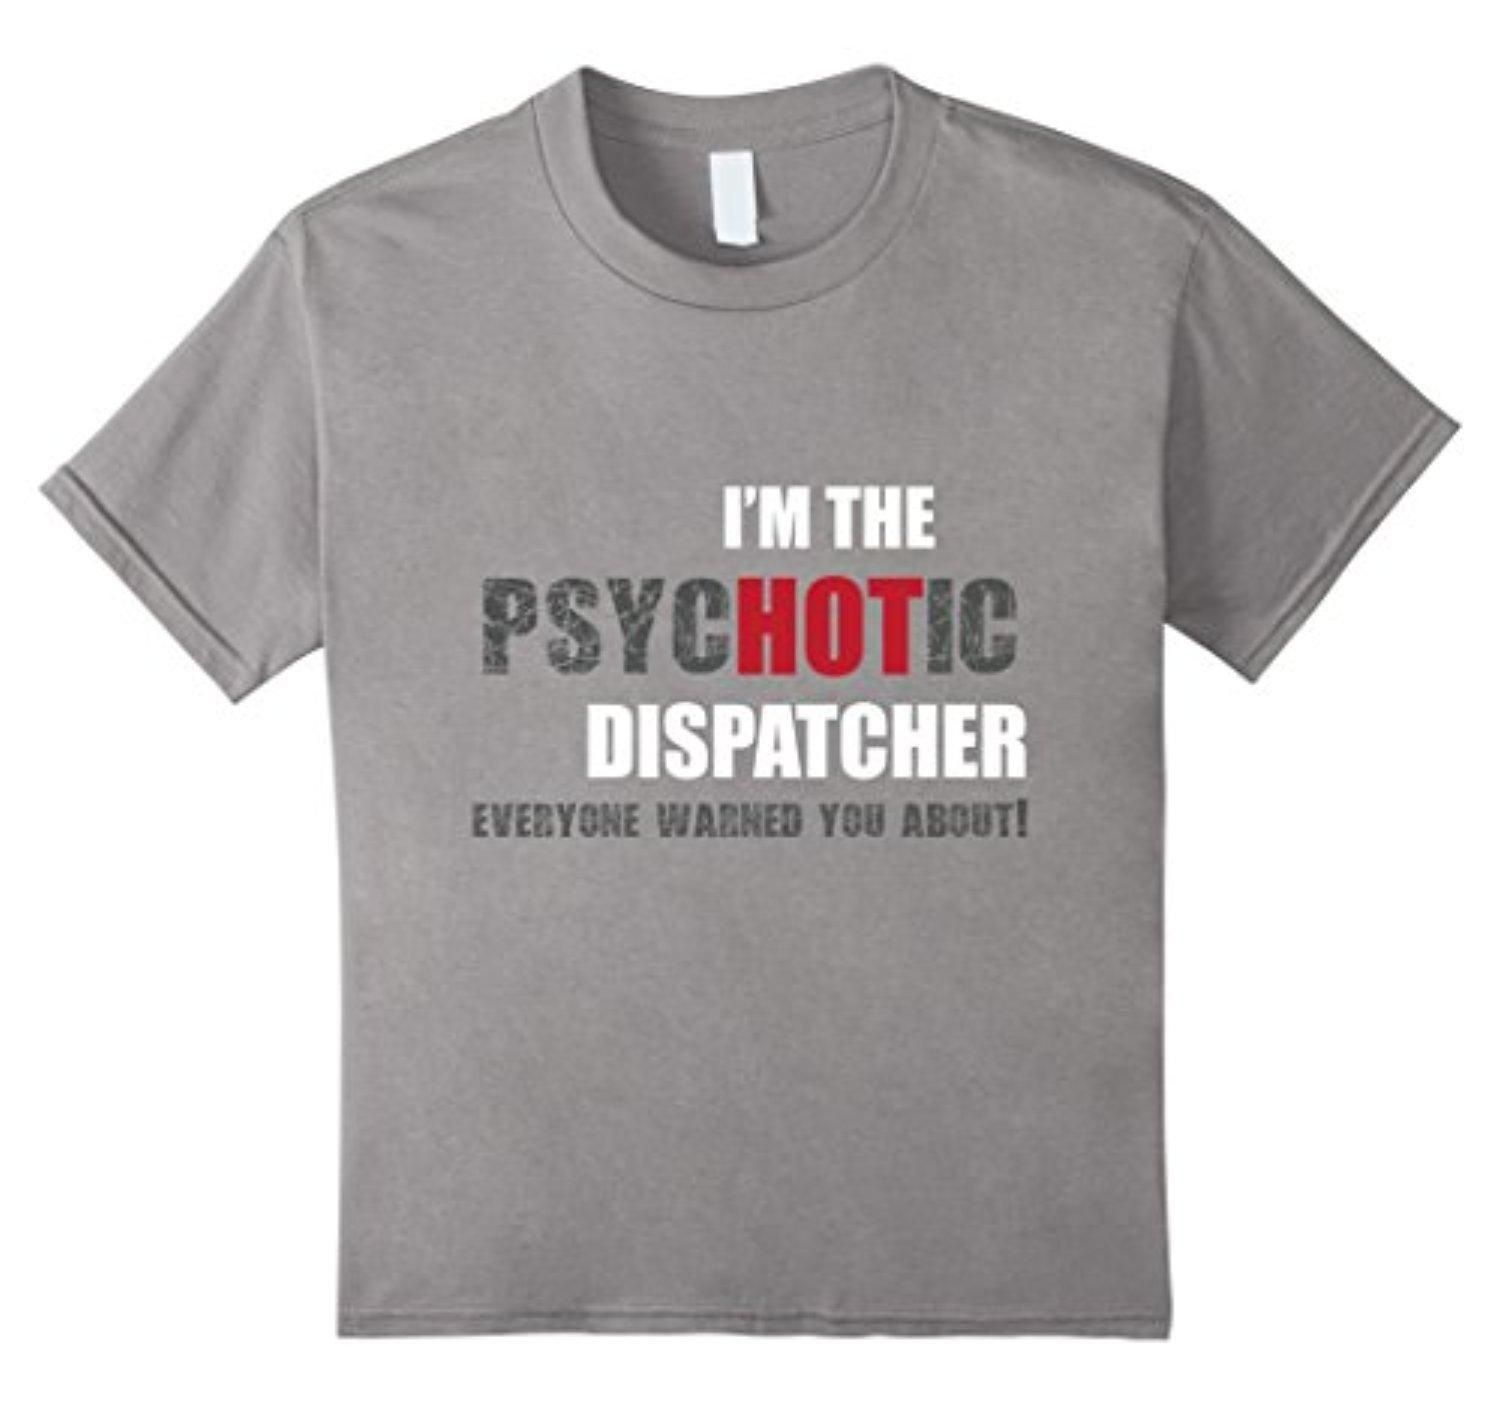 Kids I'm the psycHOTic Dispatcher fun gift idea 10 Slate - Brought to you by Avarsha.com